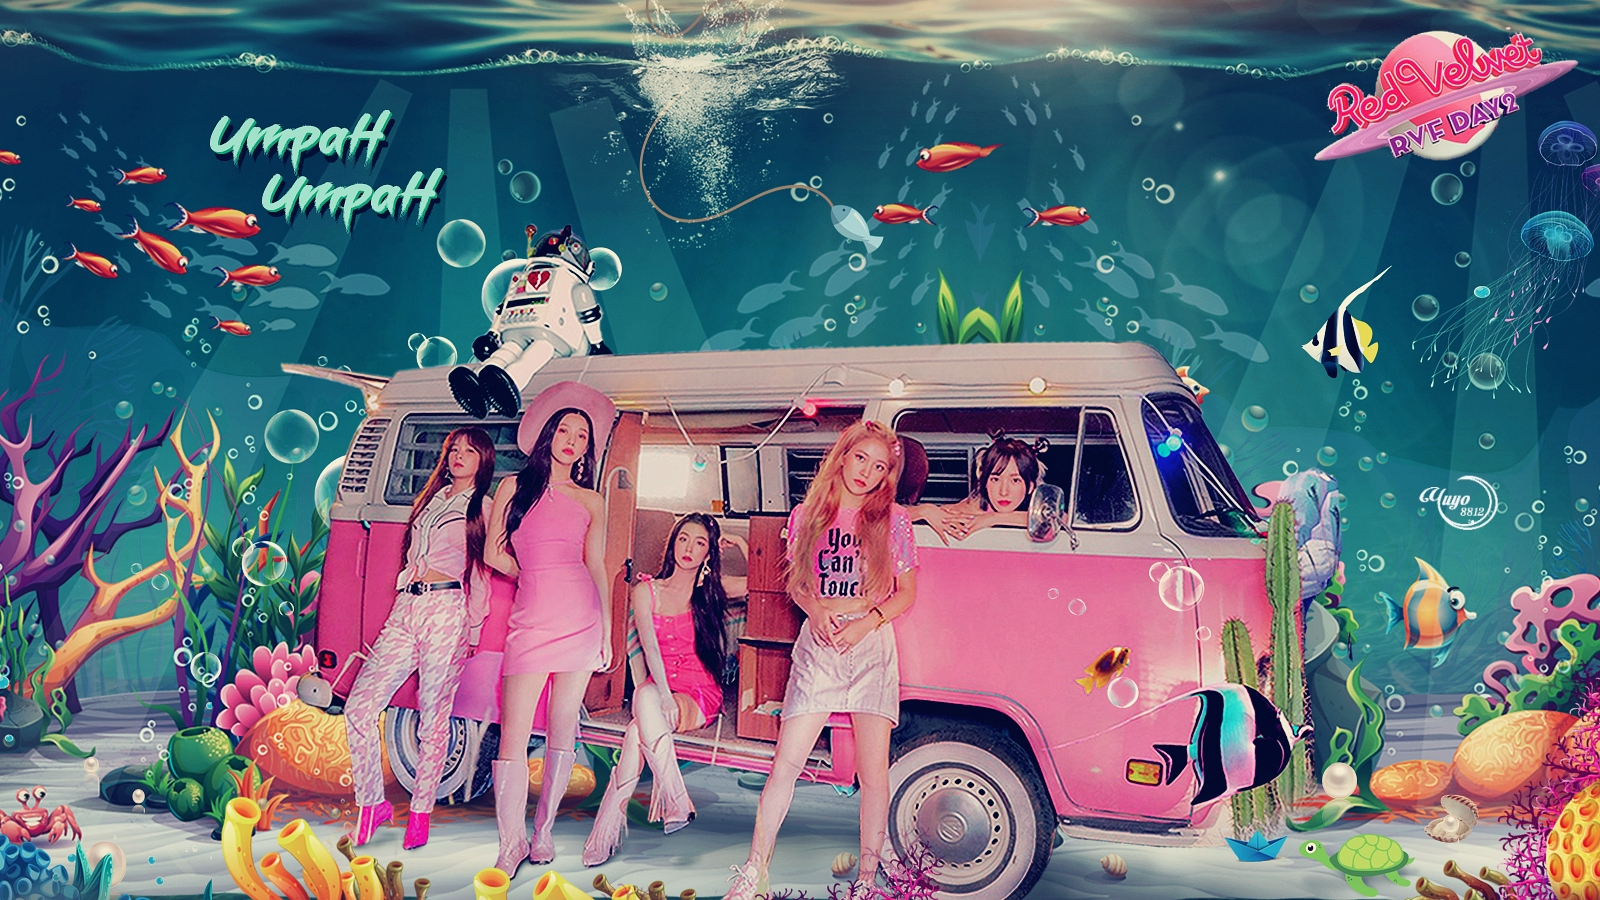 RED VELVET UMPAH UMPAH  #WALLPAPER